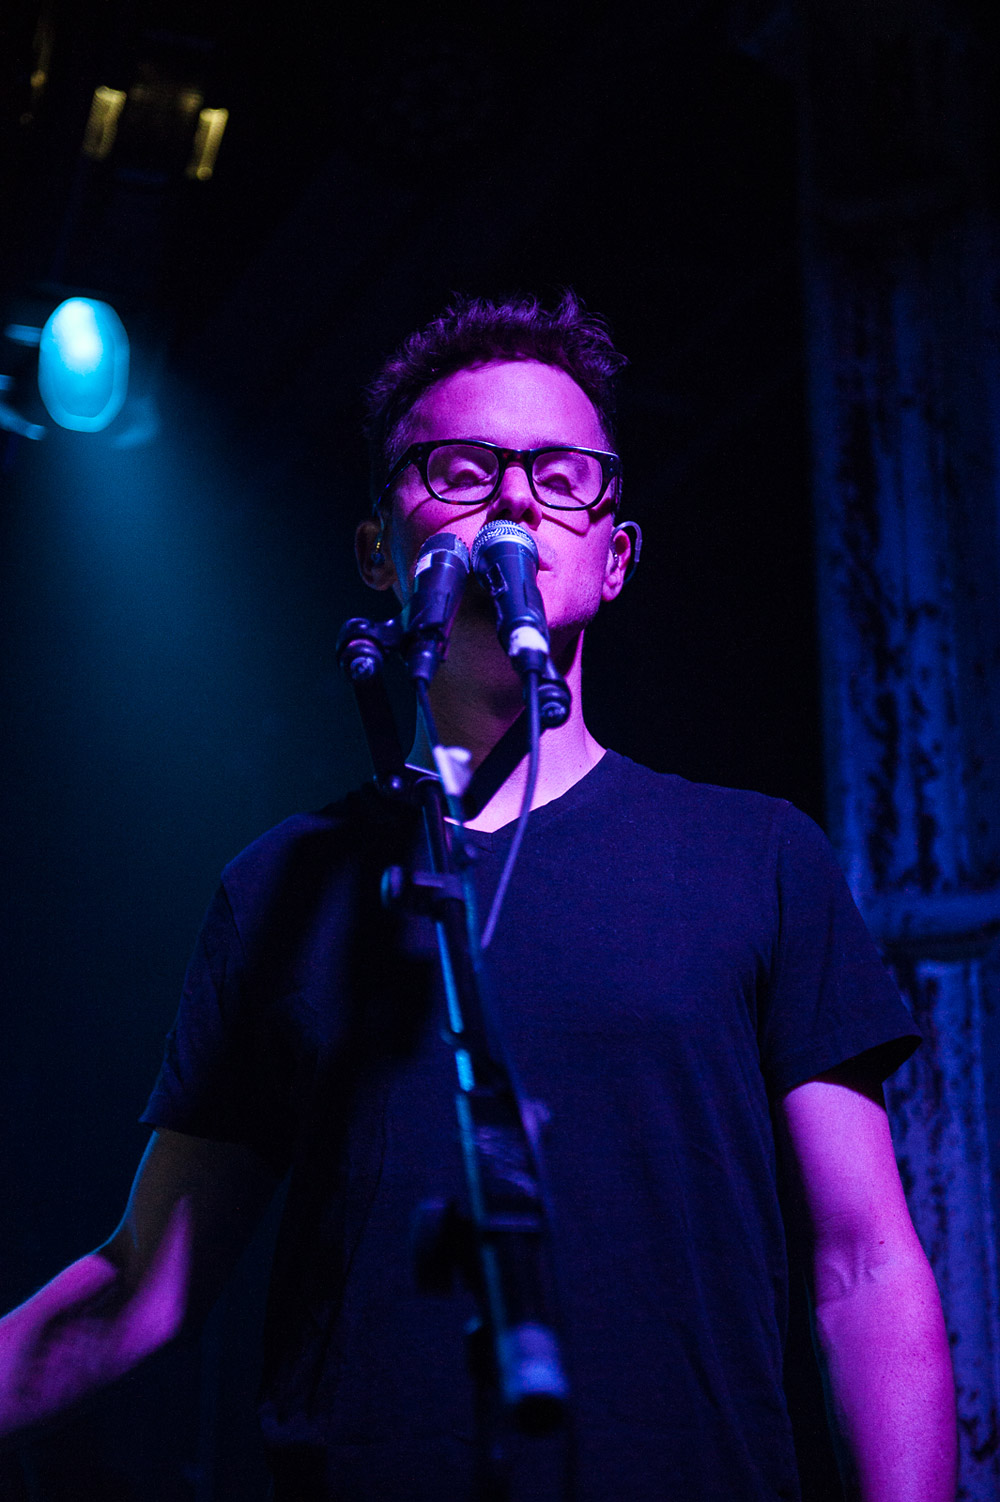 Son Lux @ XOYO, London 21/05/14